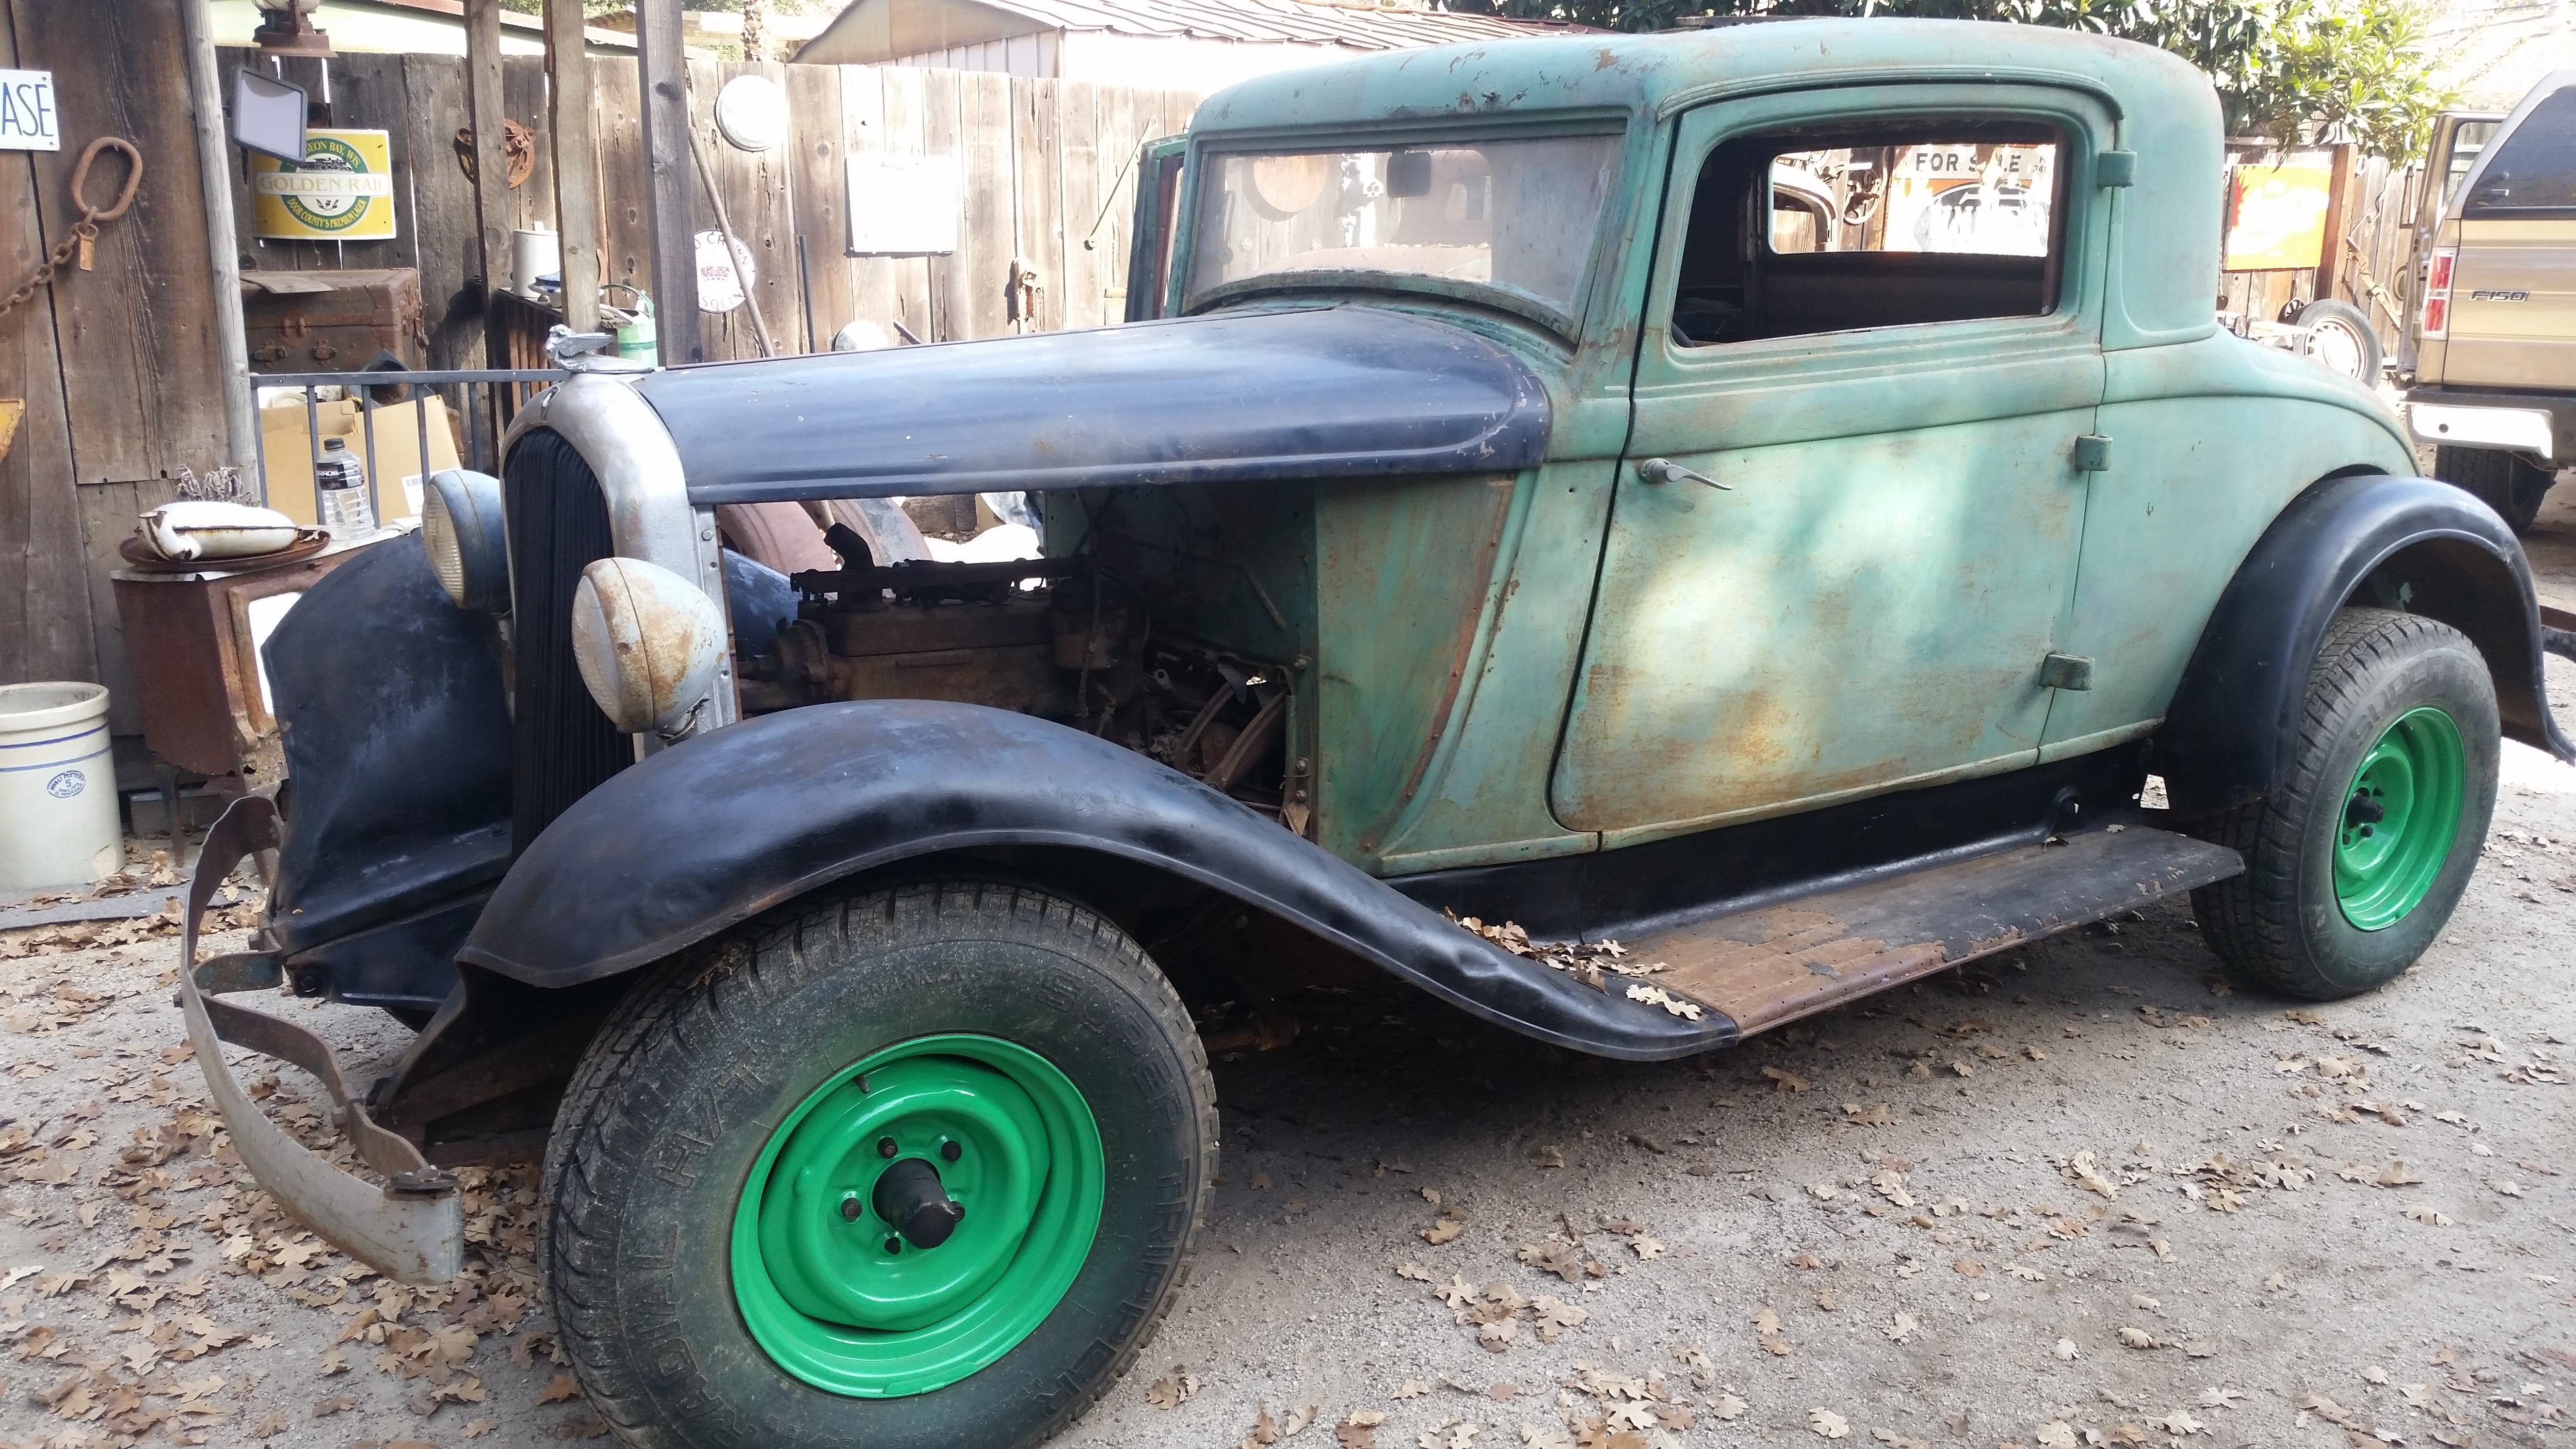 1932 Plymouth 3 window coupe and parts - Cars For Sale - Antique ...